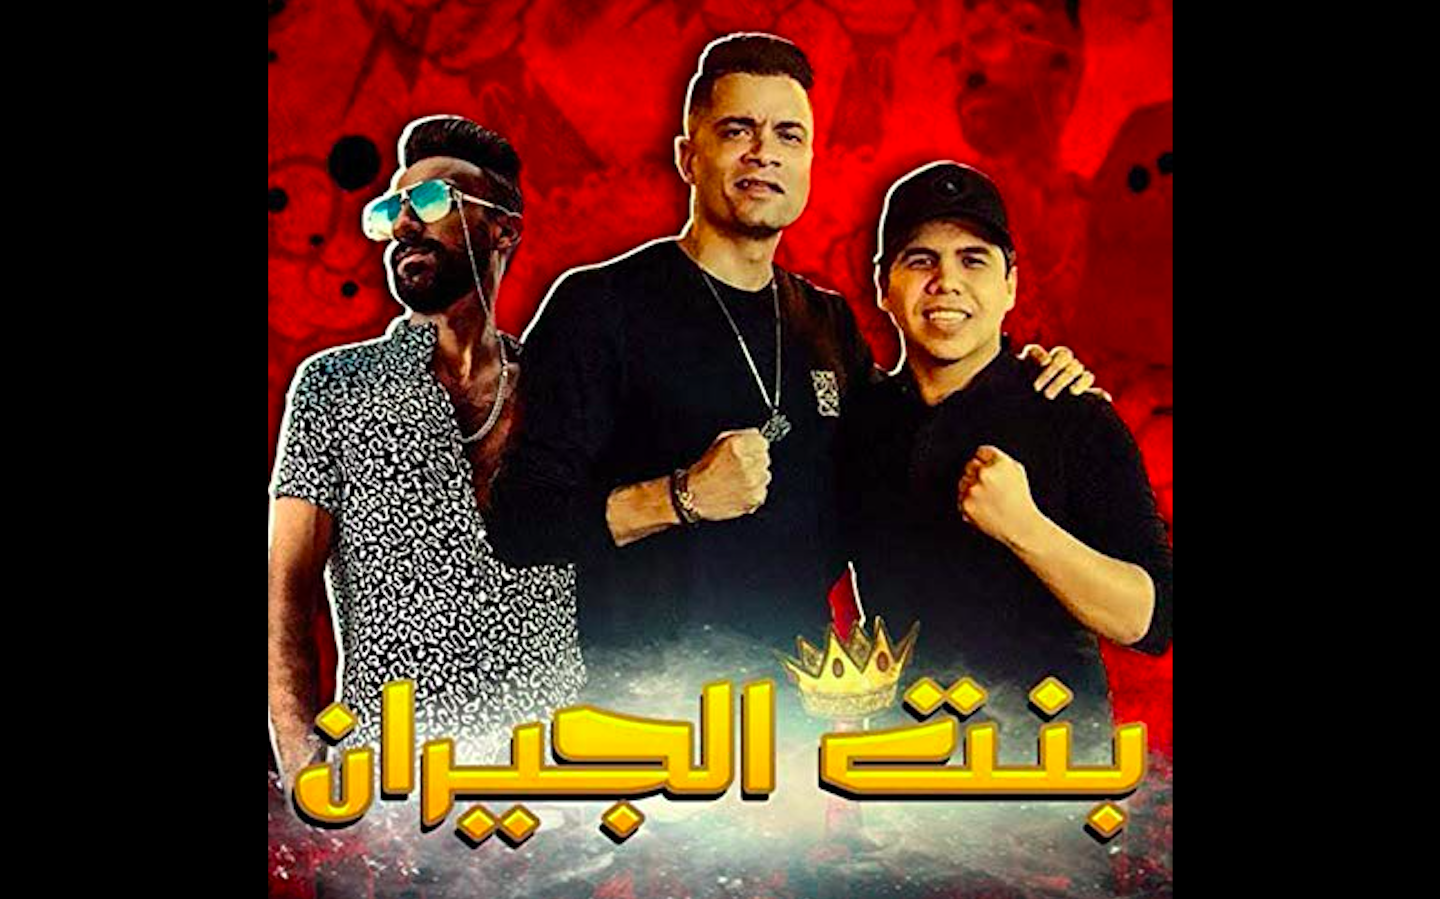 Egypt pulls the plug on popular street music